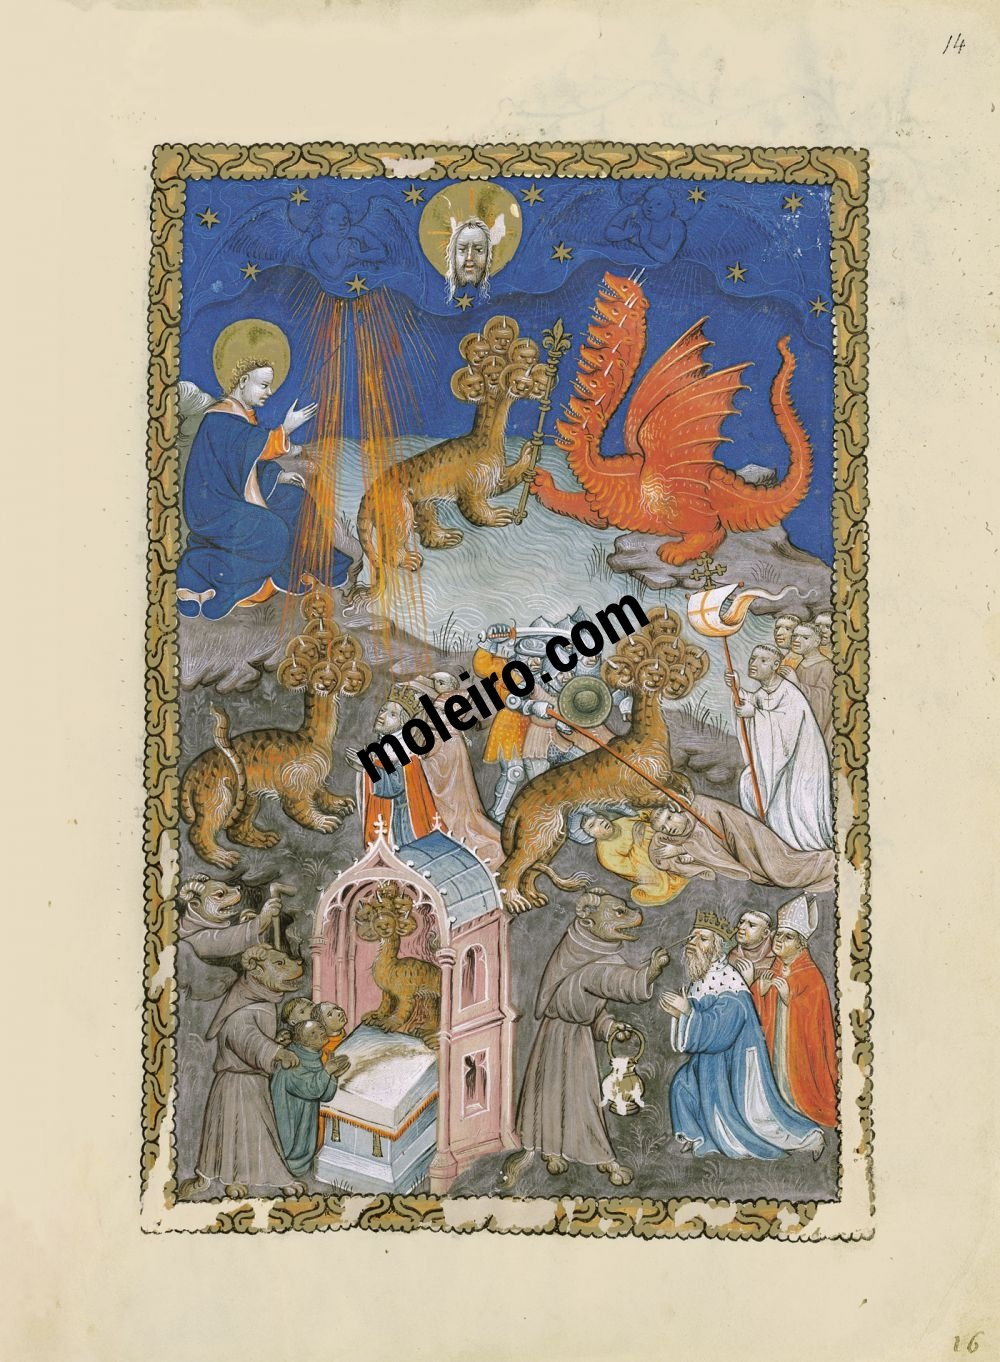 Flemish Apocalypse f. 14r, The dragon, the seven-headed beast from the sea and the false prophet